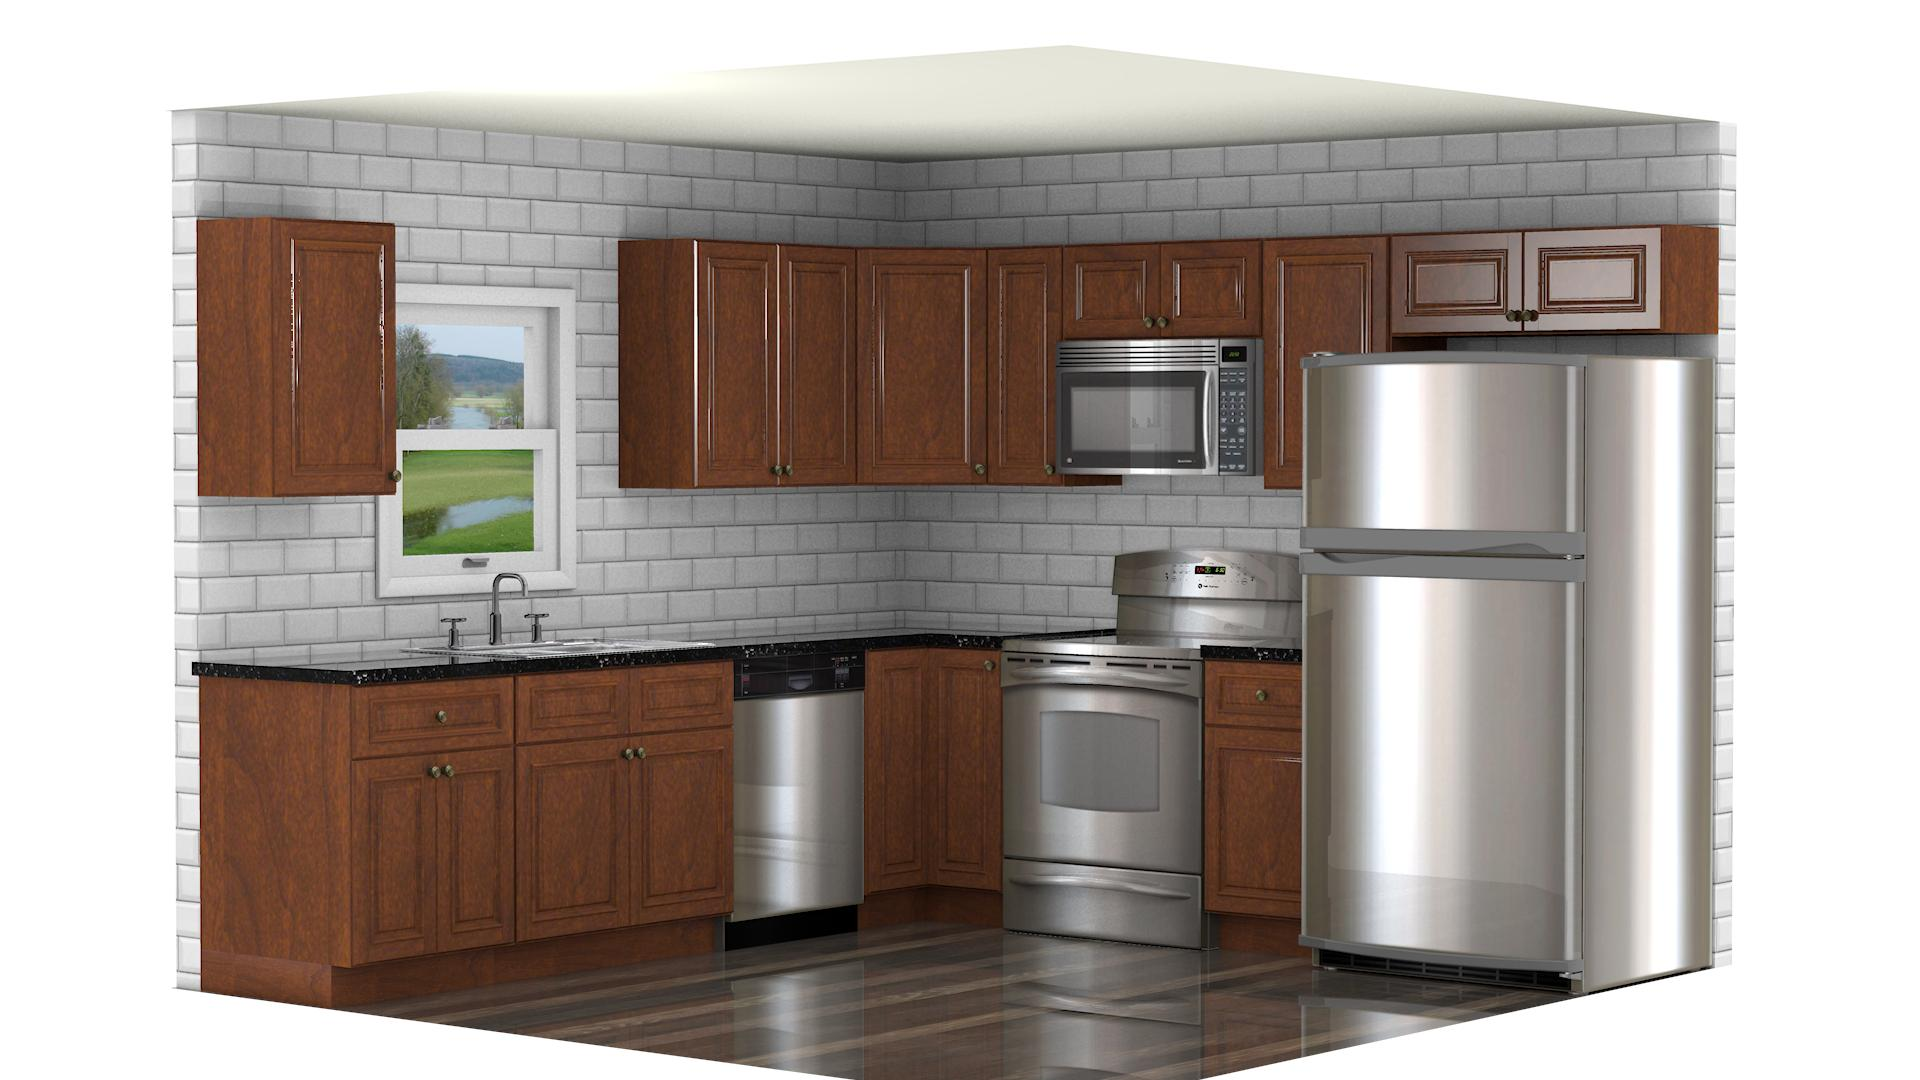 Ghi brandywine waverly cabinets for Brandywine kitchen cabinets